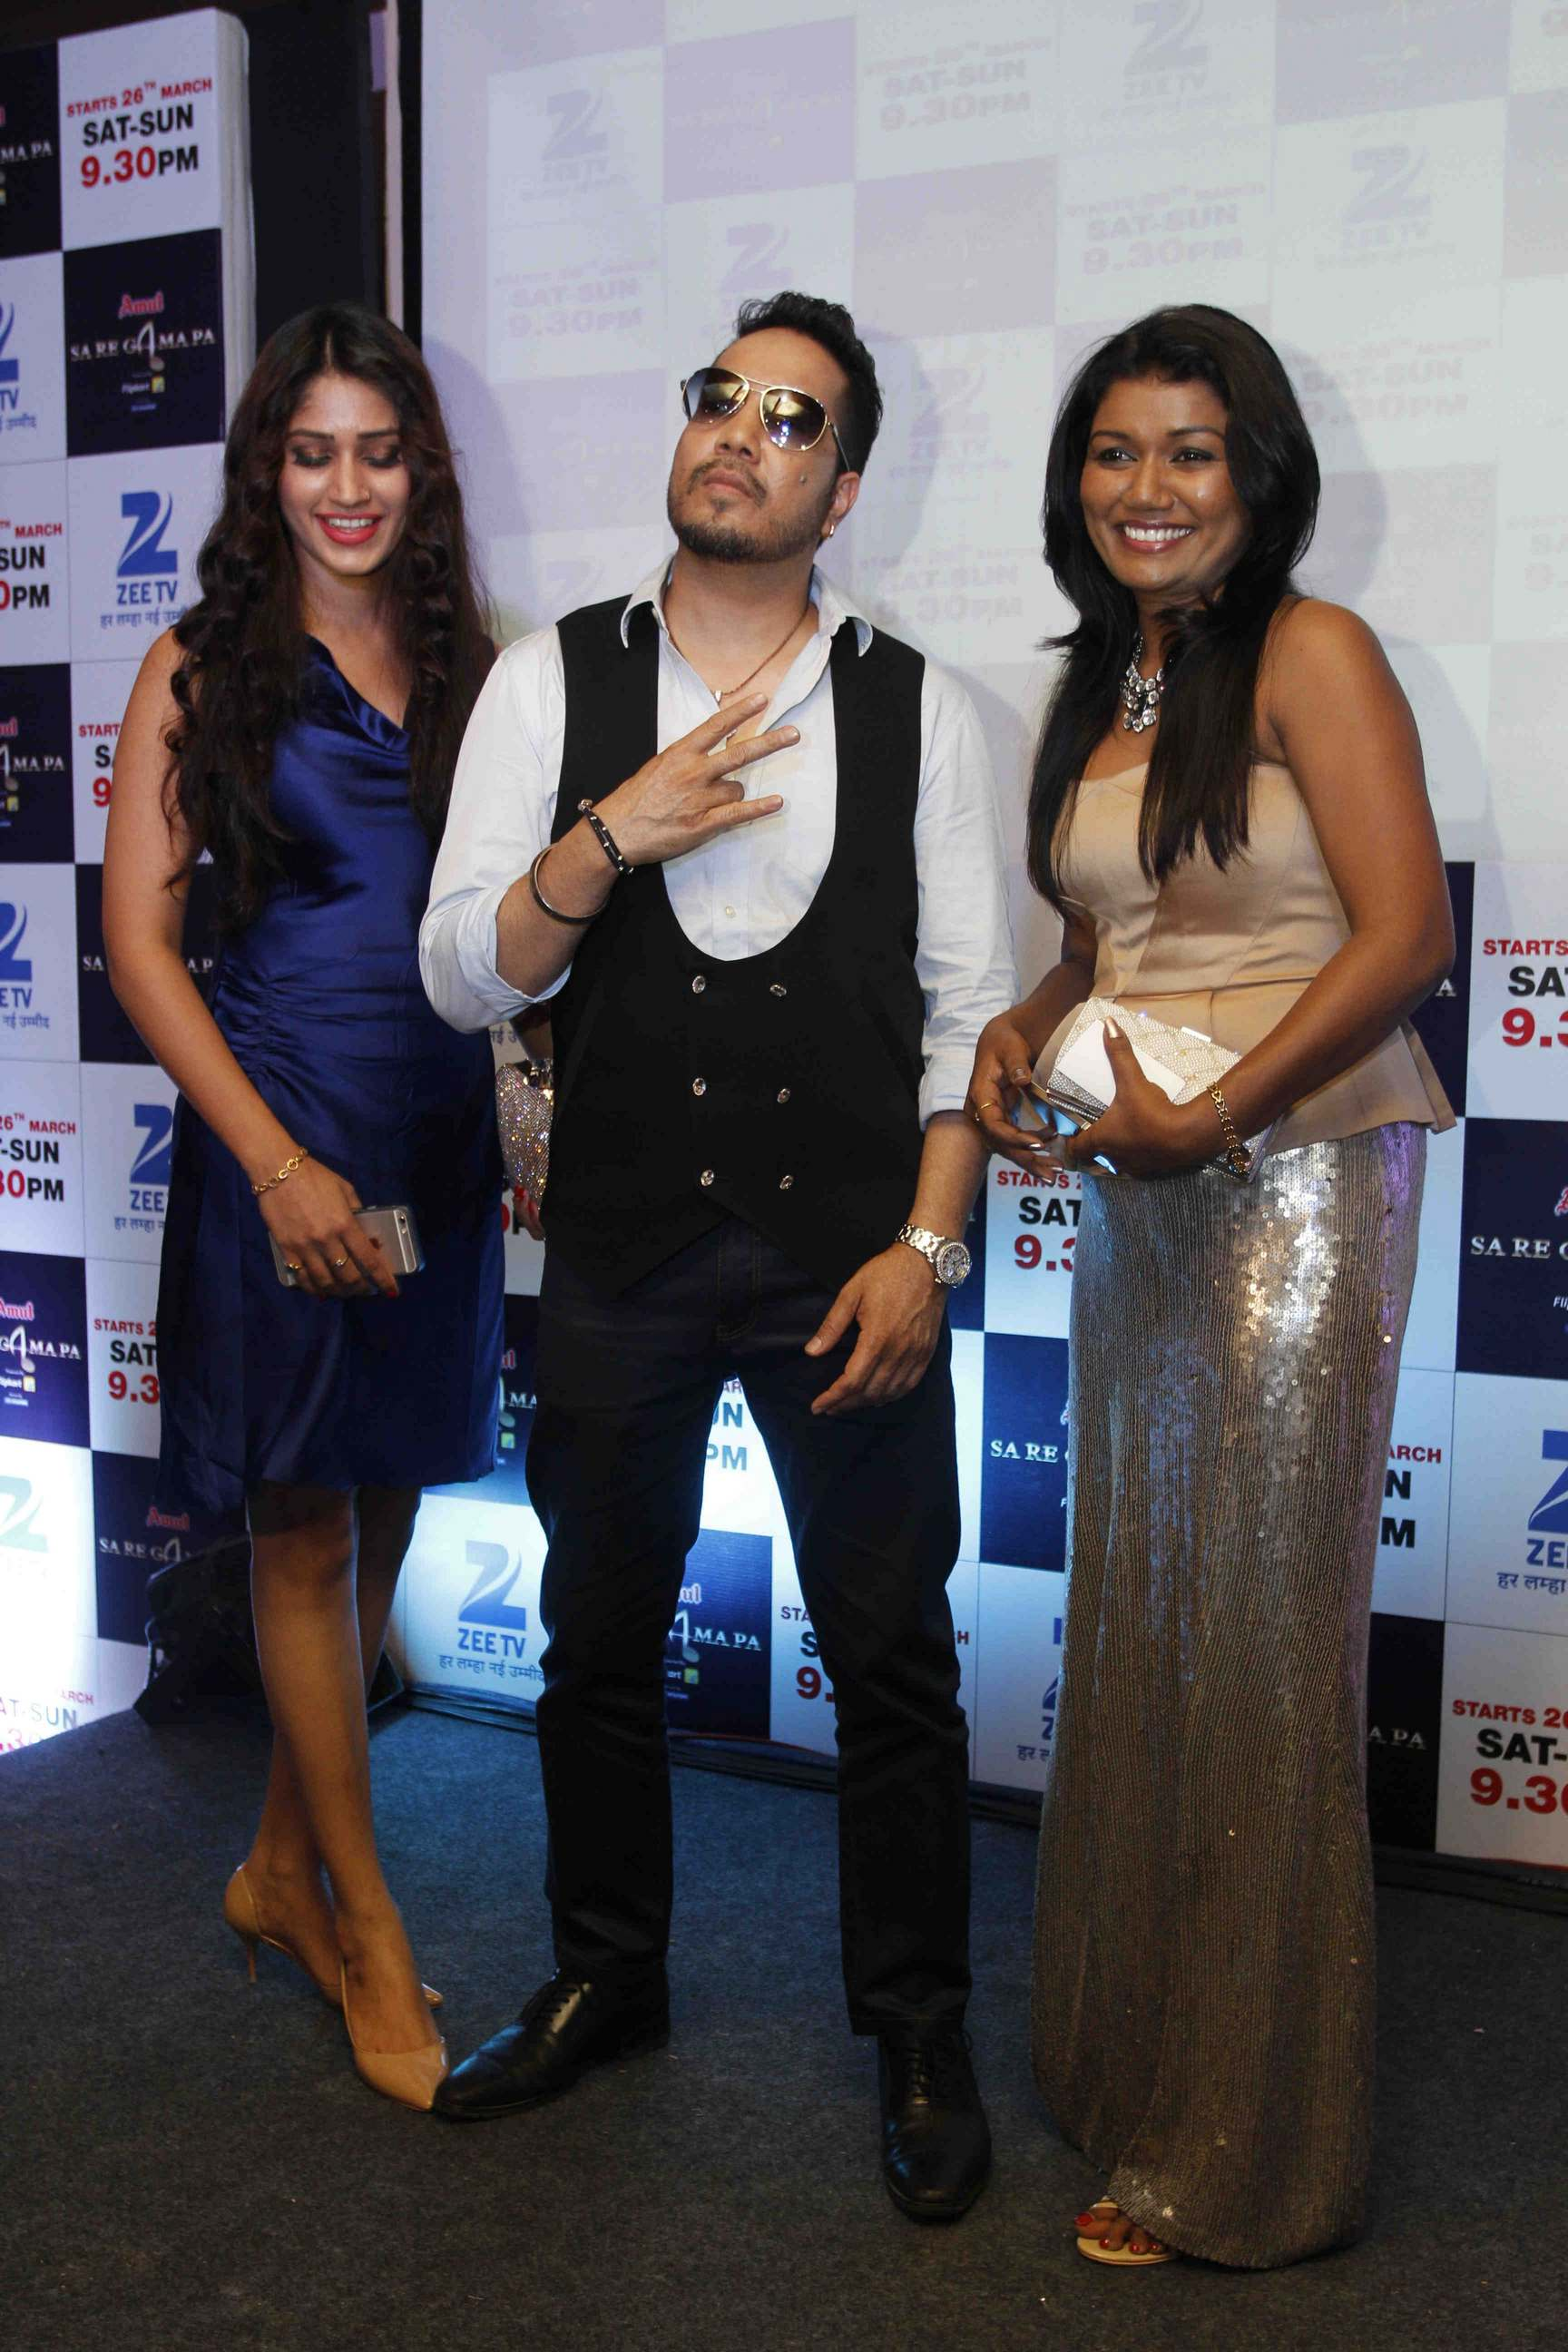 Zee TV Launches New Season of Sa Re Ga Ma Pa Reality TV in Mumbai